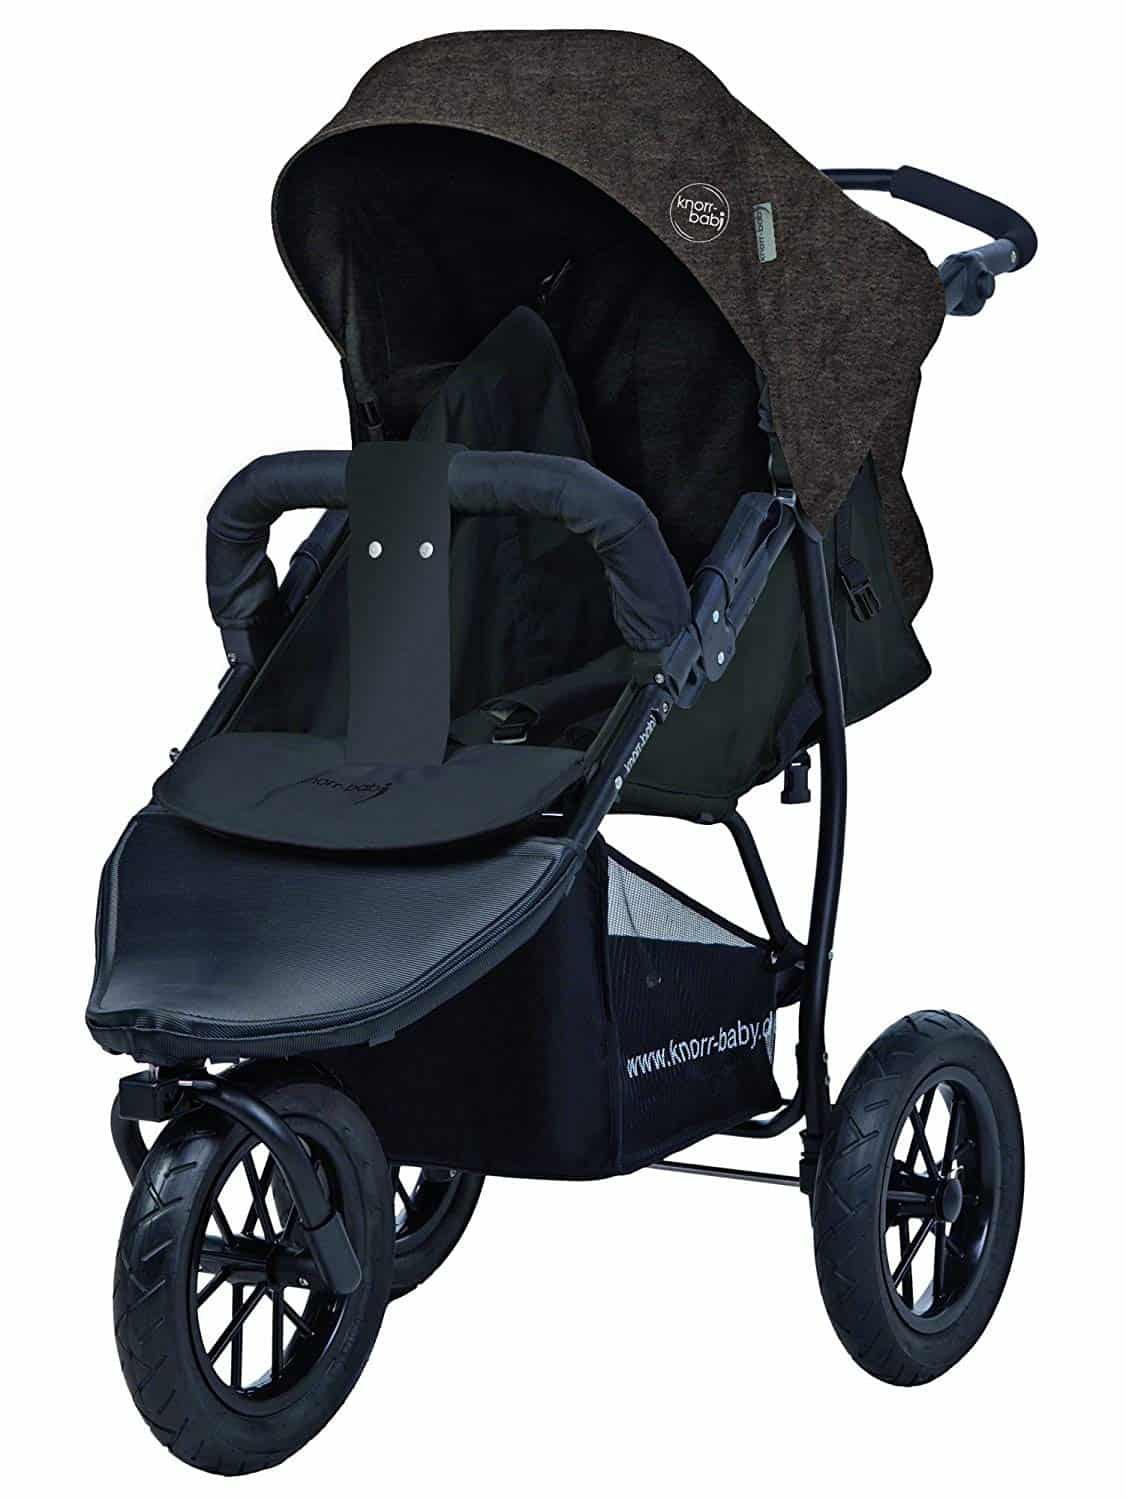 Knorr Baby Triciclo Joggy Cochecito